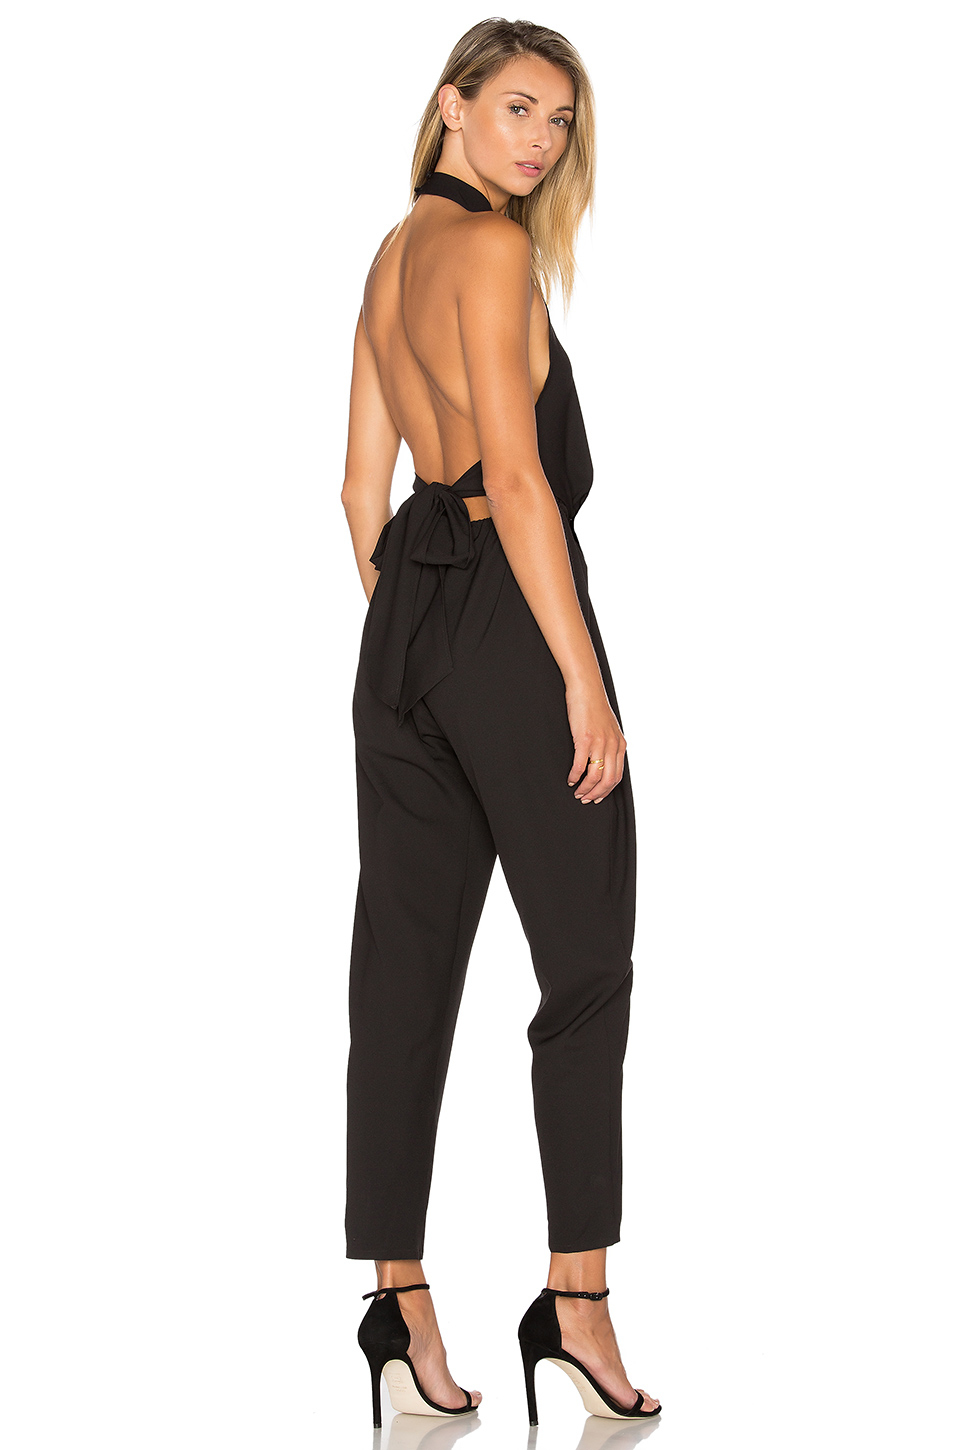 It's just a graphic of Agile The Fifth Label Moonlit Jumpsuit